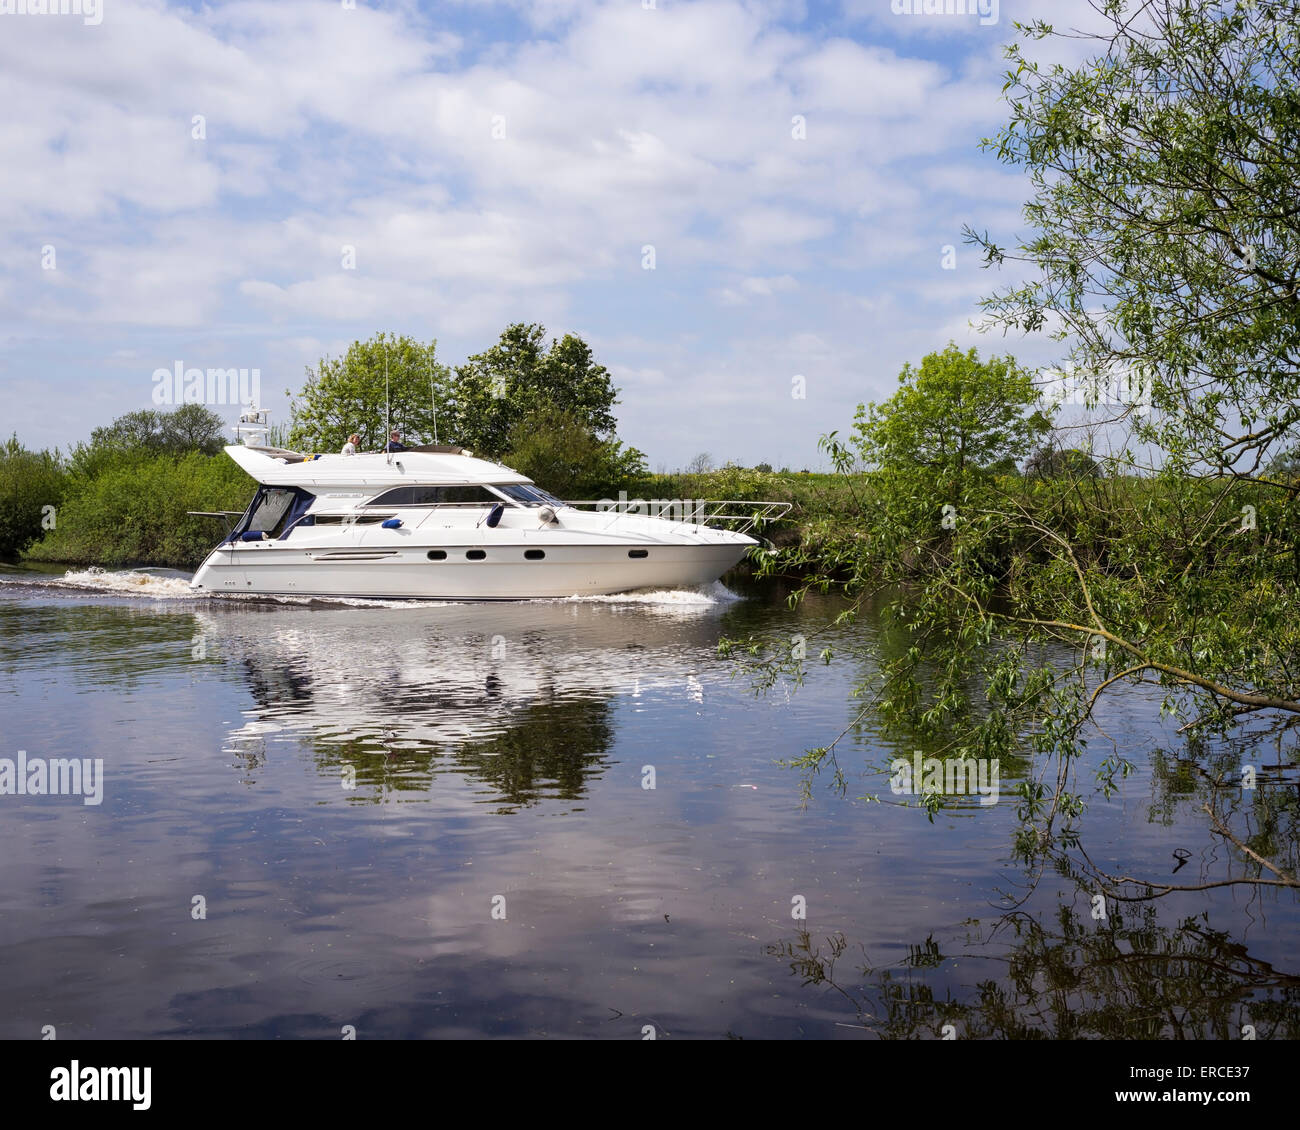 A Bank Holiday weekend cruising on the river Ouse, City of York, Yorkshire, England, UK - Stock Image